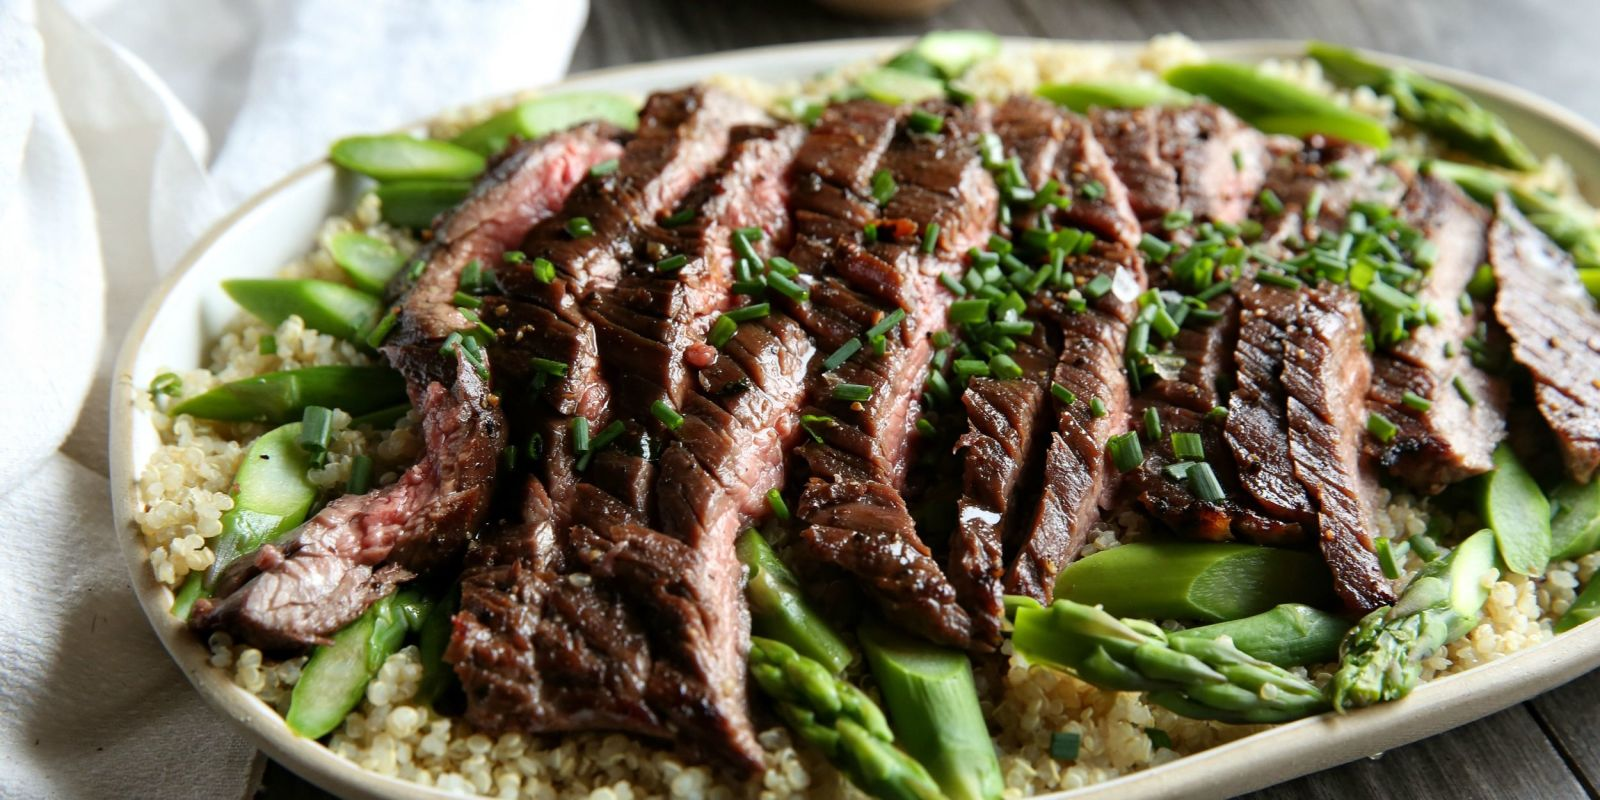 Best Flank Steak Recipe  How To Make Marinated Flank Steak  Delish